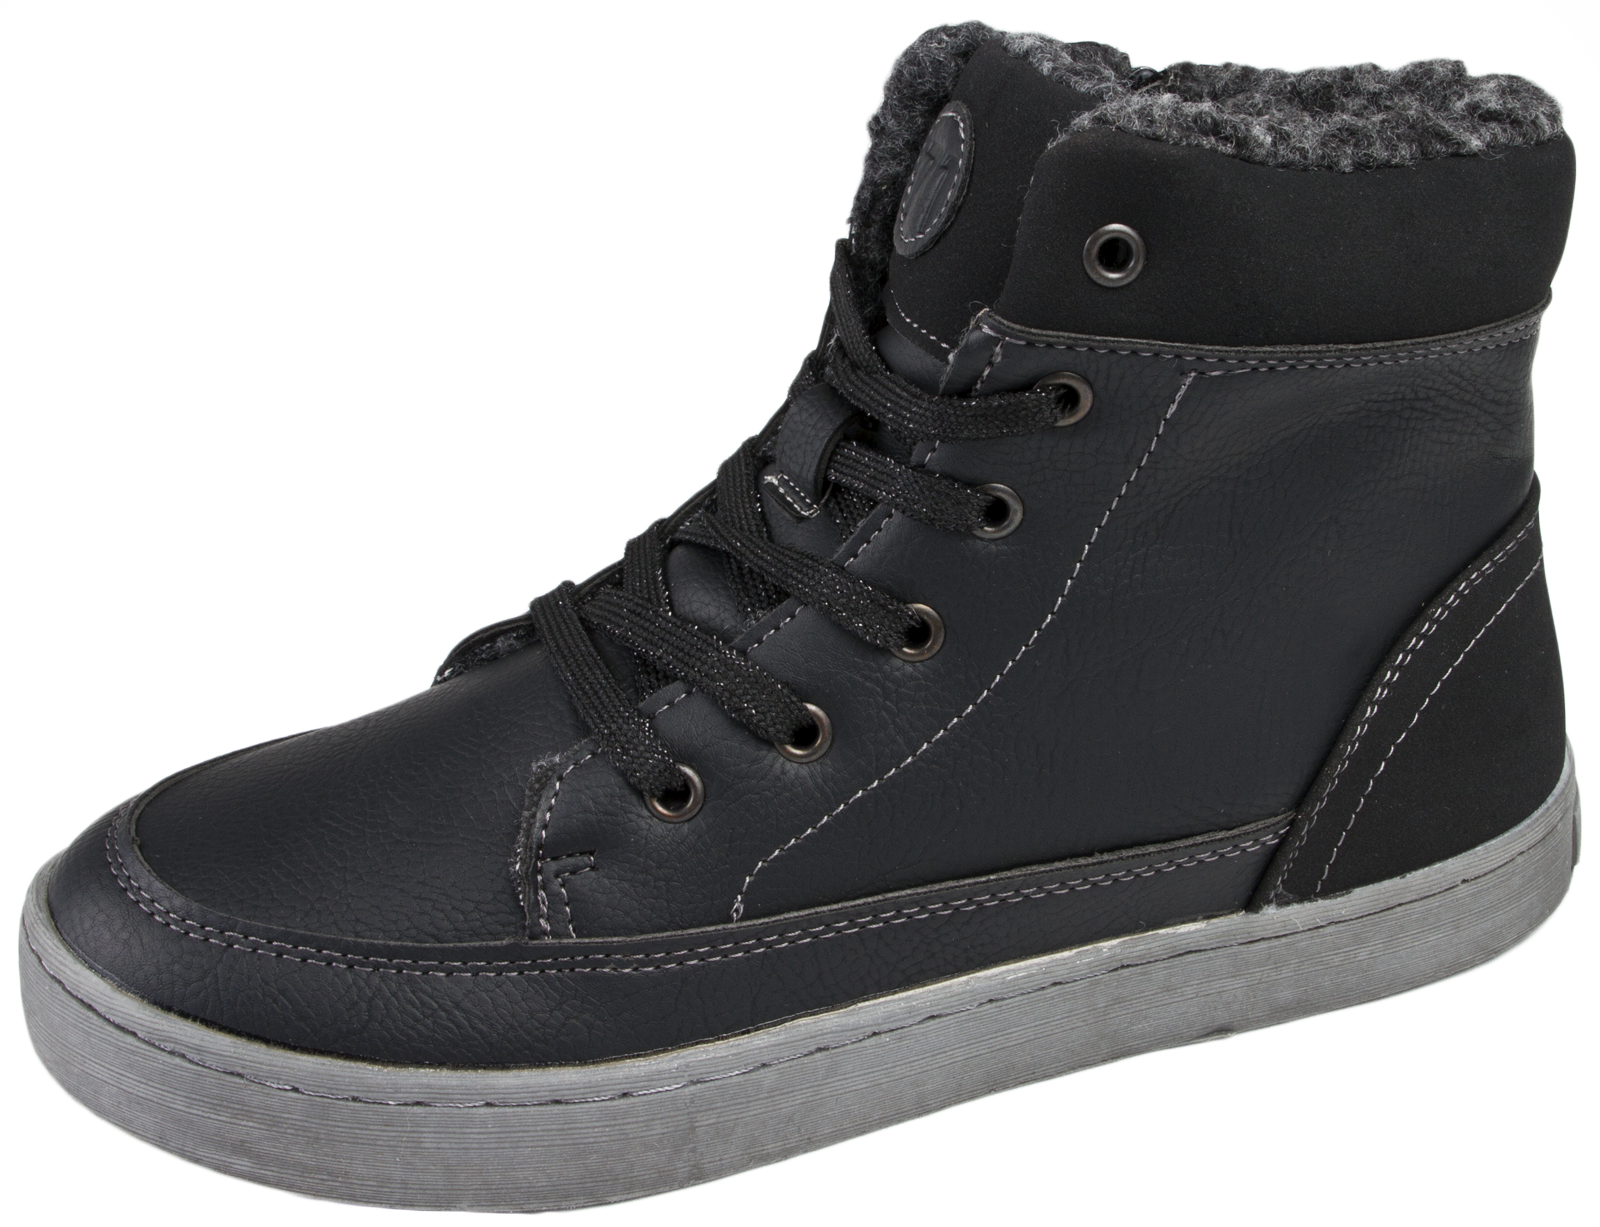 Fleece Lined Hi Tops Ankle Boots Trainers Womens Boys ...